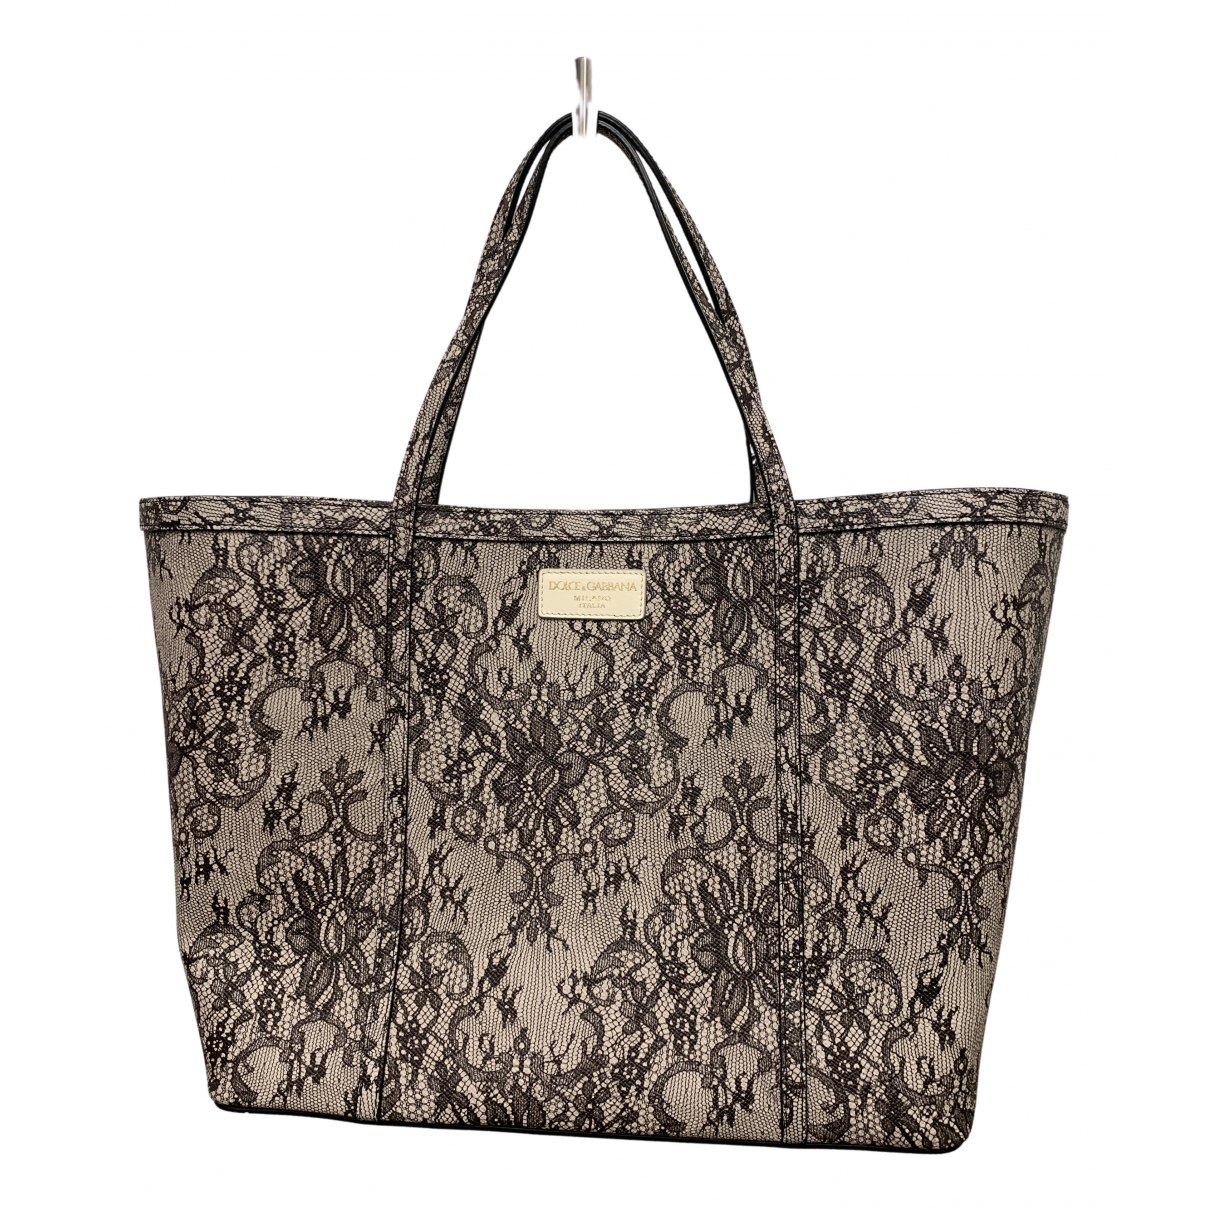 Dolce & Gabbana N Grey Leather handbag for Women N